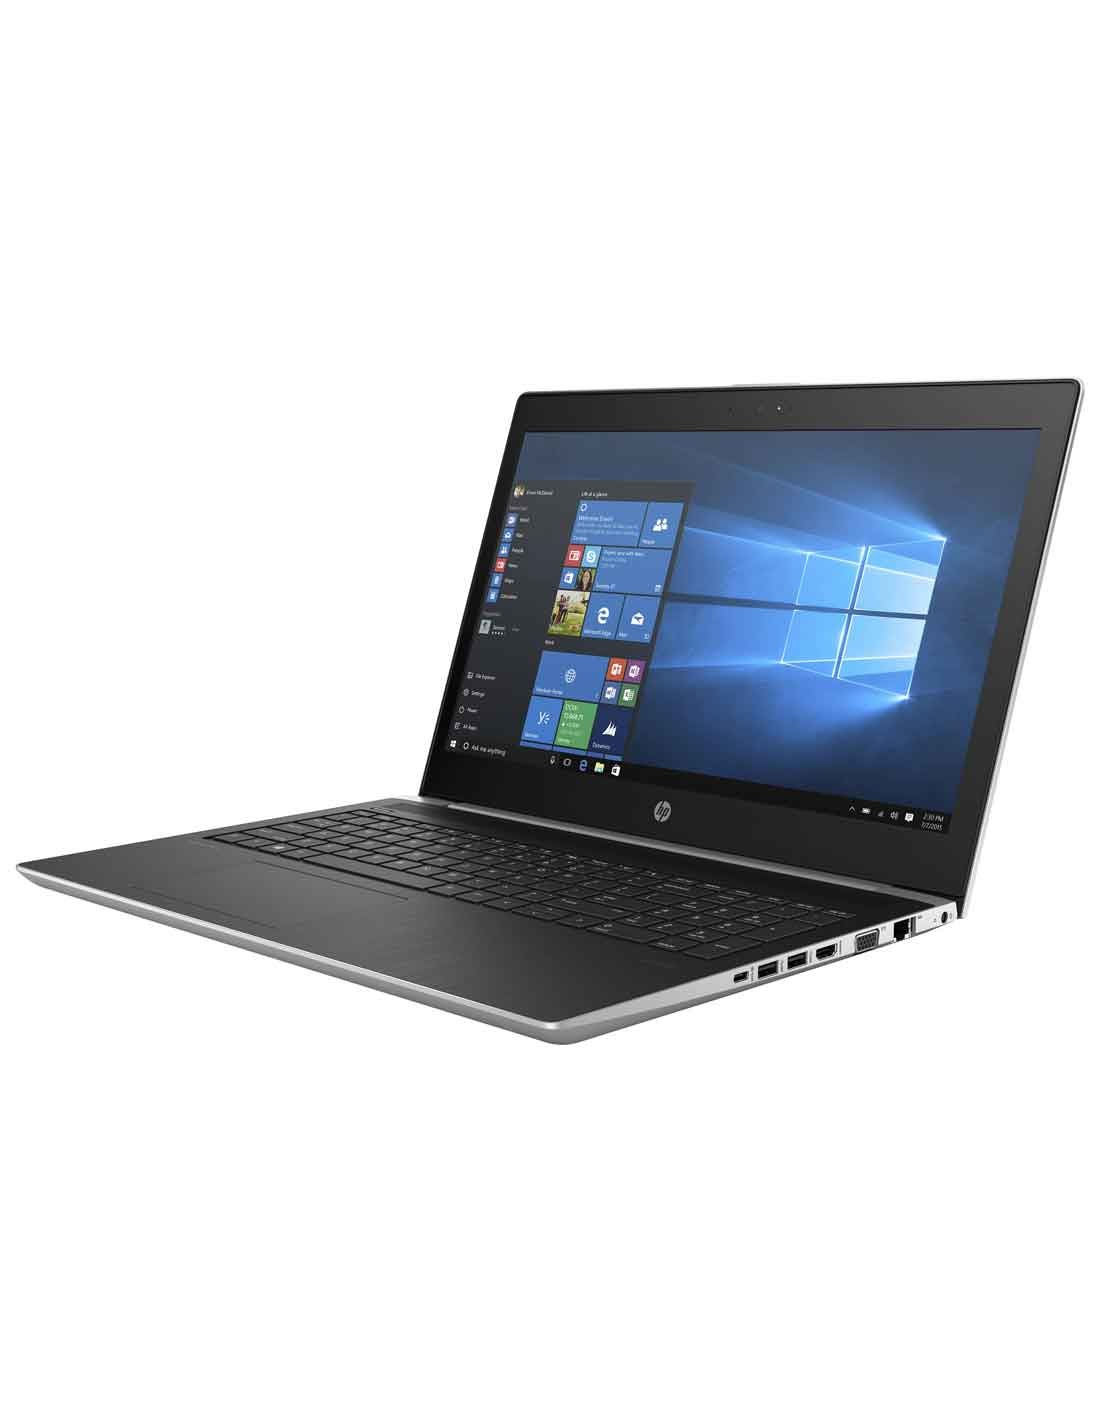 HP ProBook 450 G5 Notebook at the cheapest price and fast free delivery in Dubai